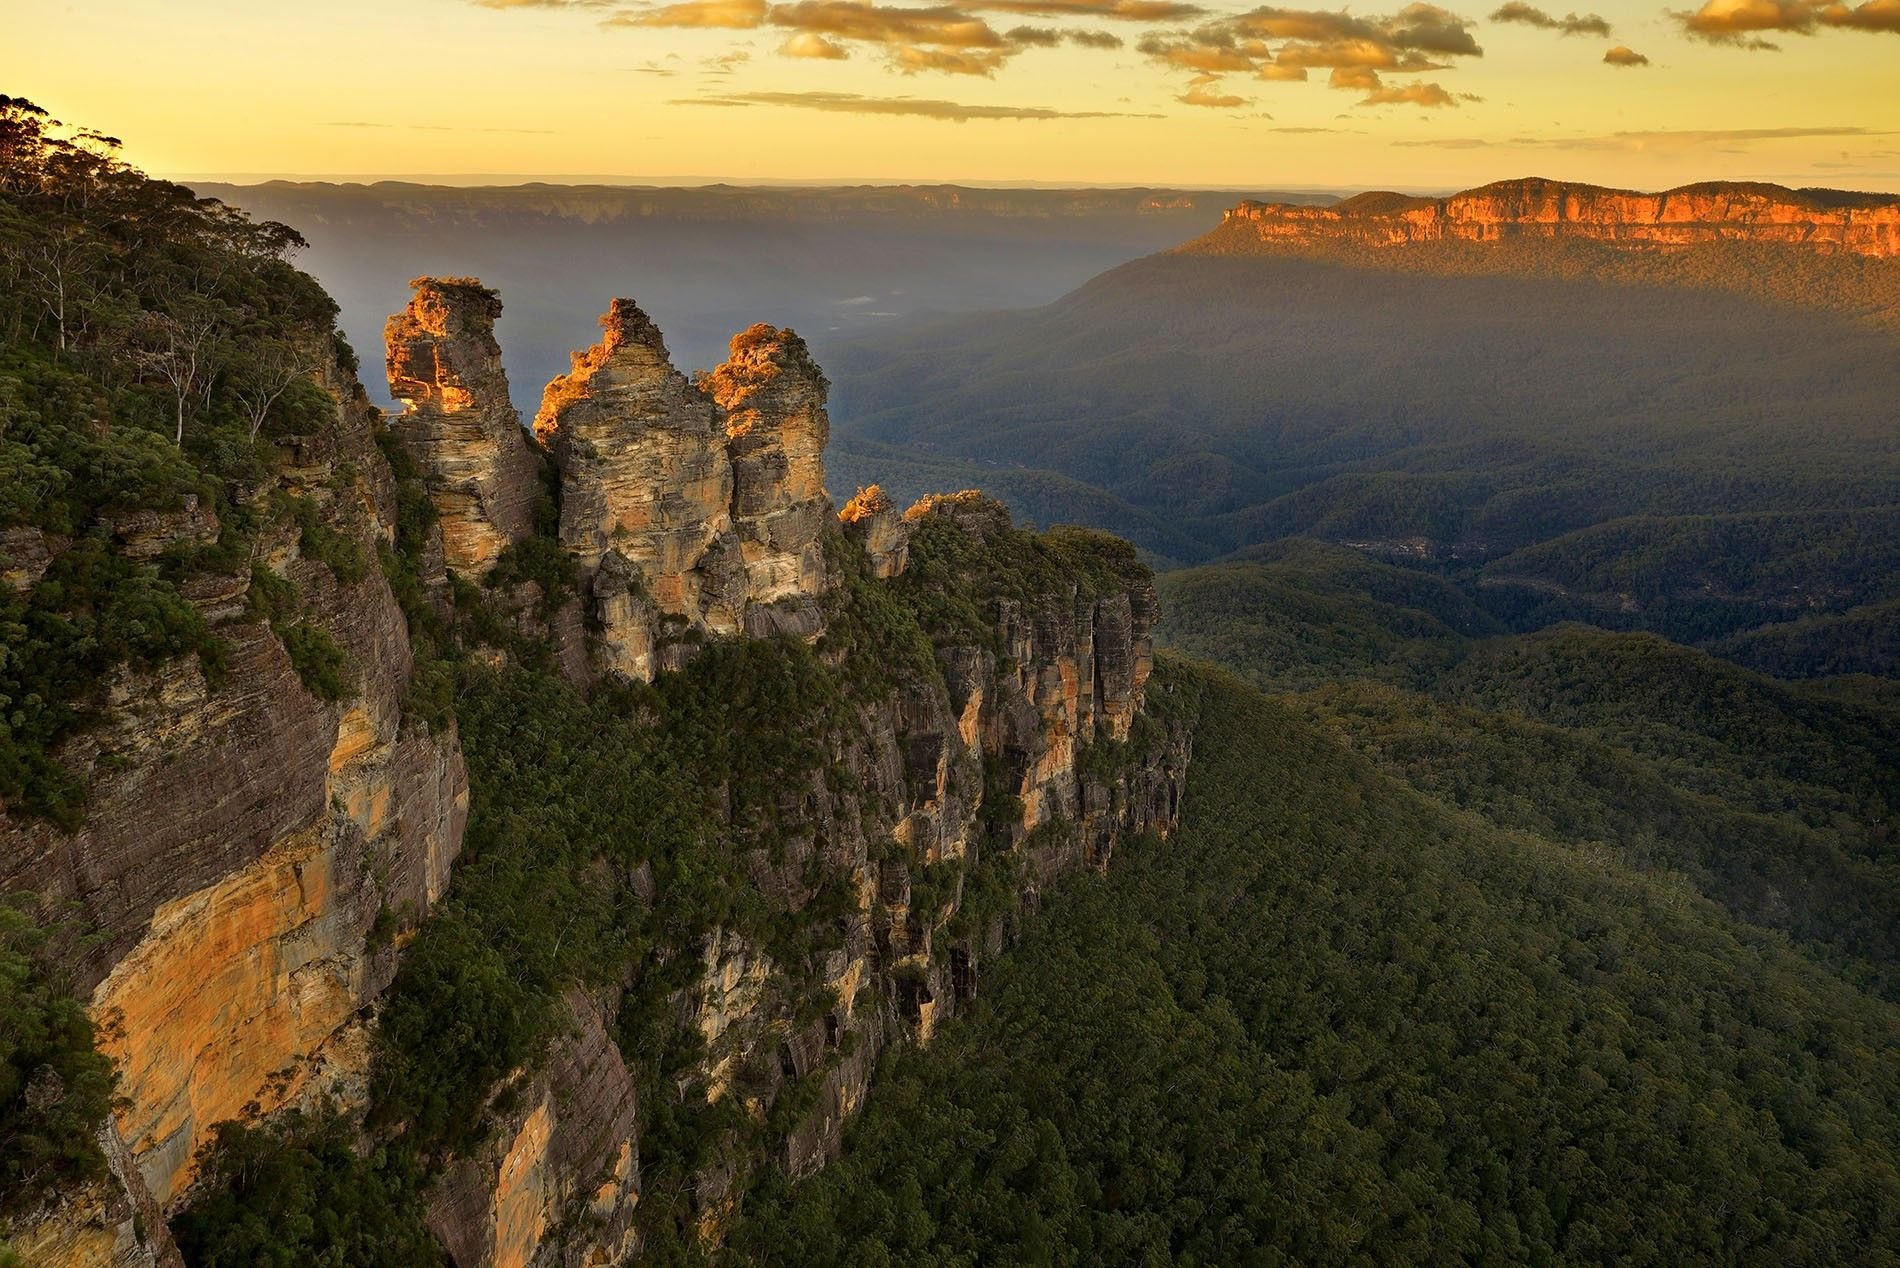 The 'Three sisters' in Blue Mountains, New South Wales